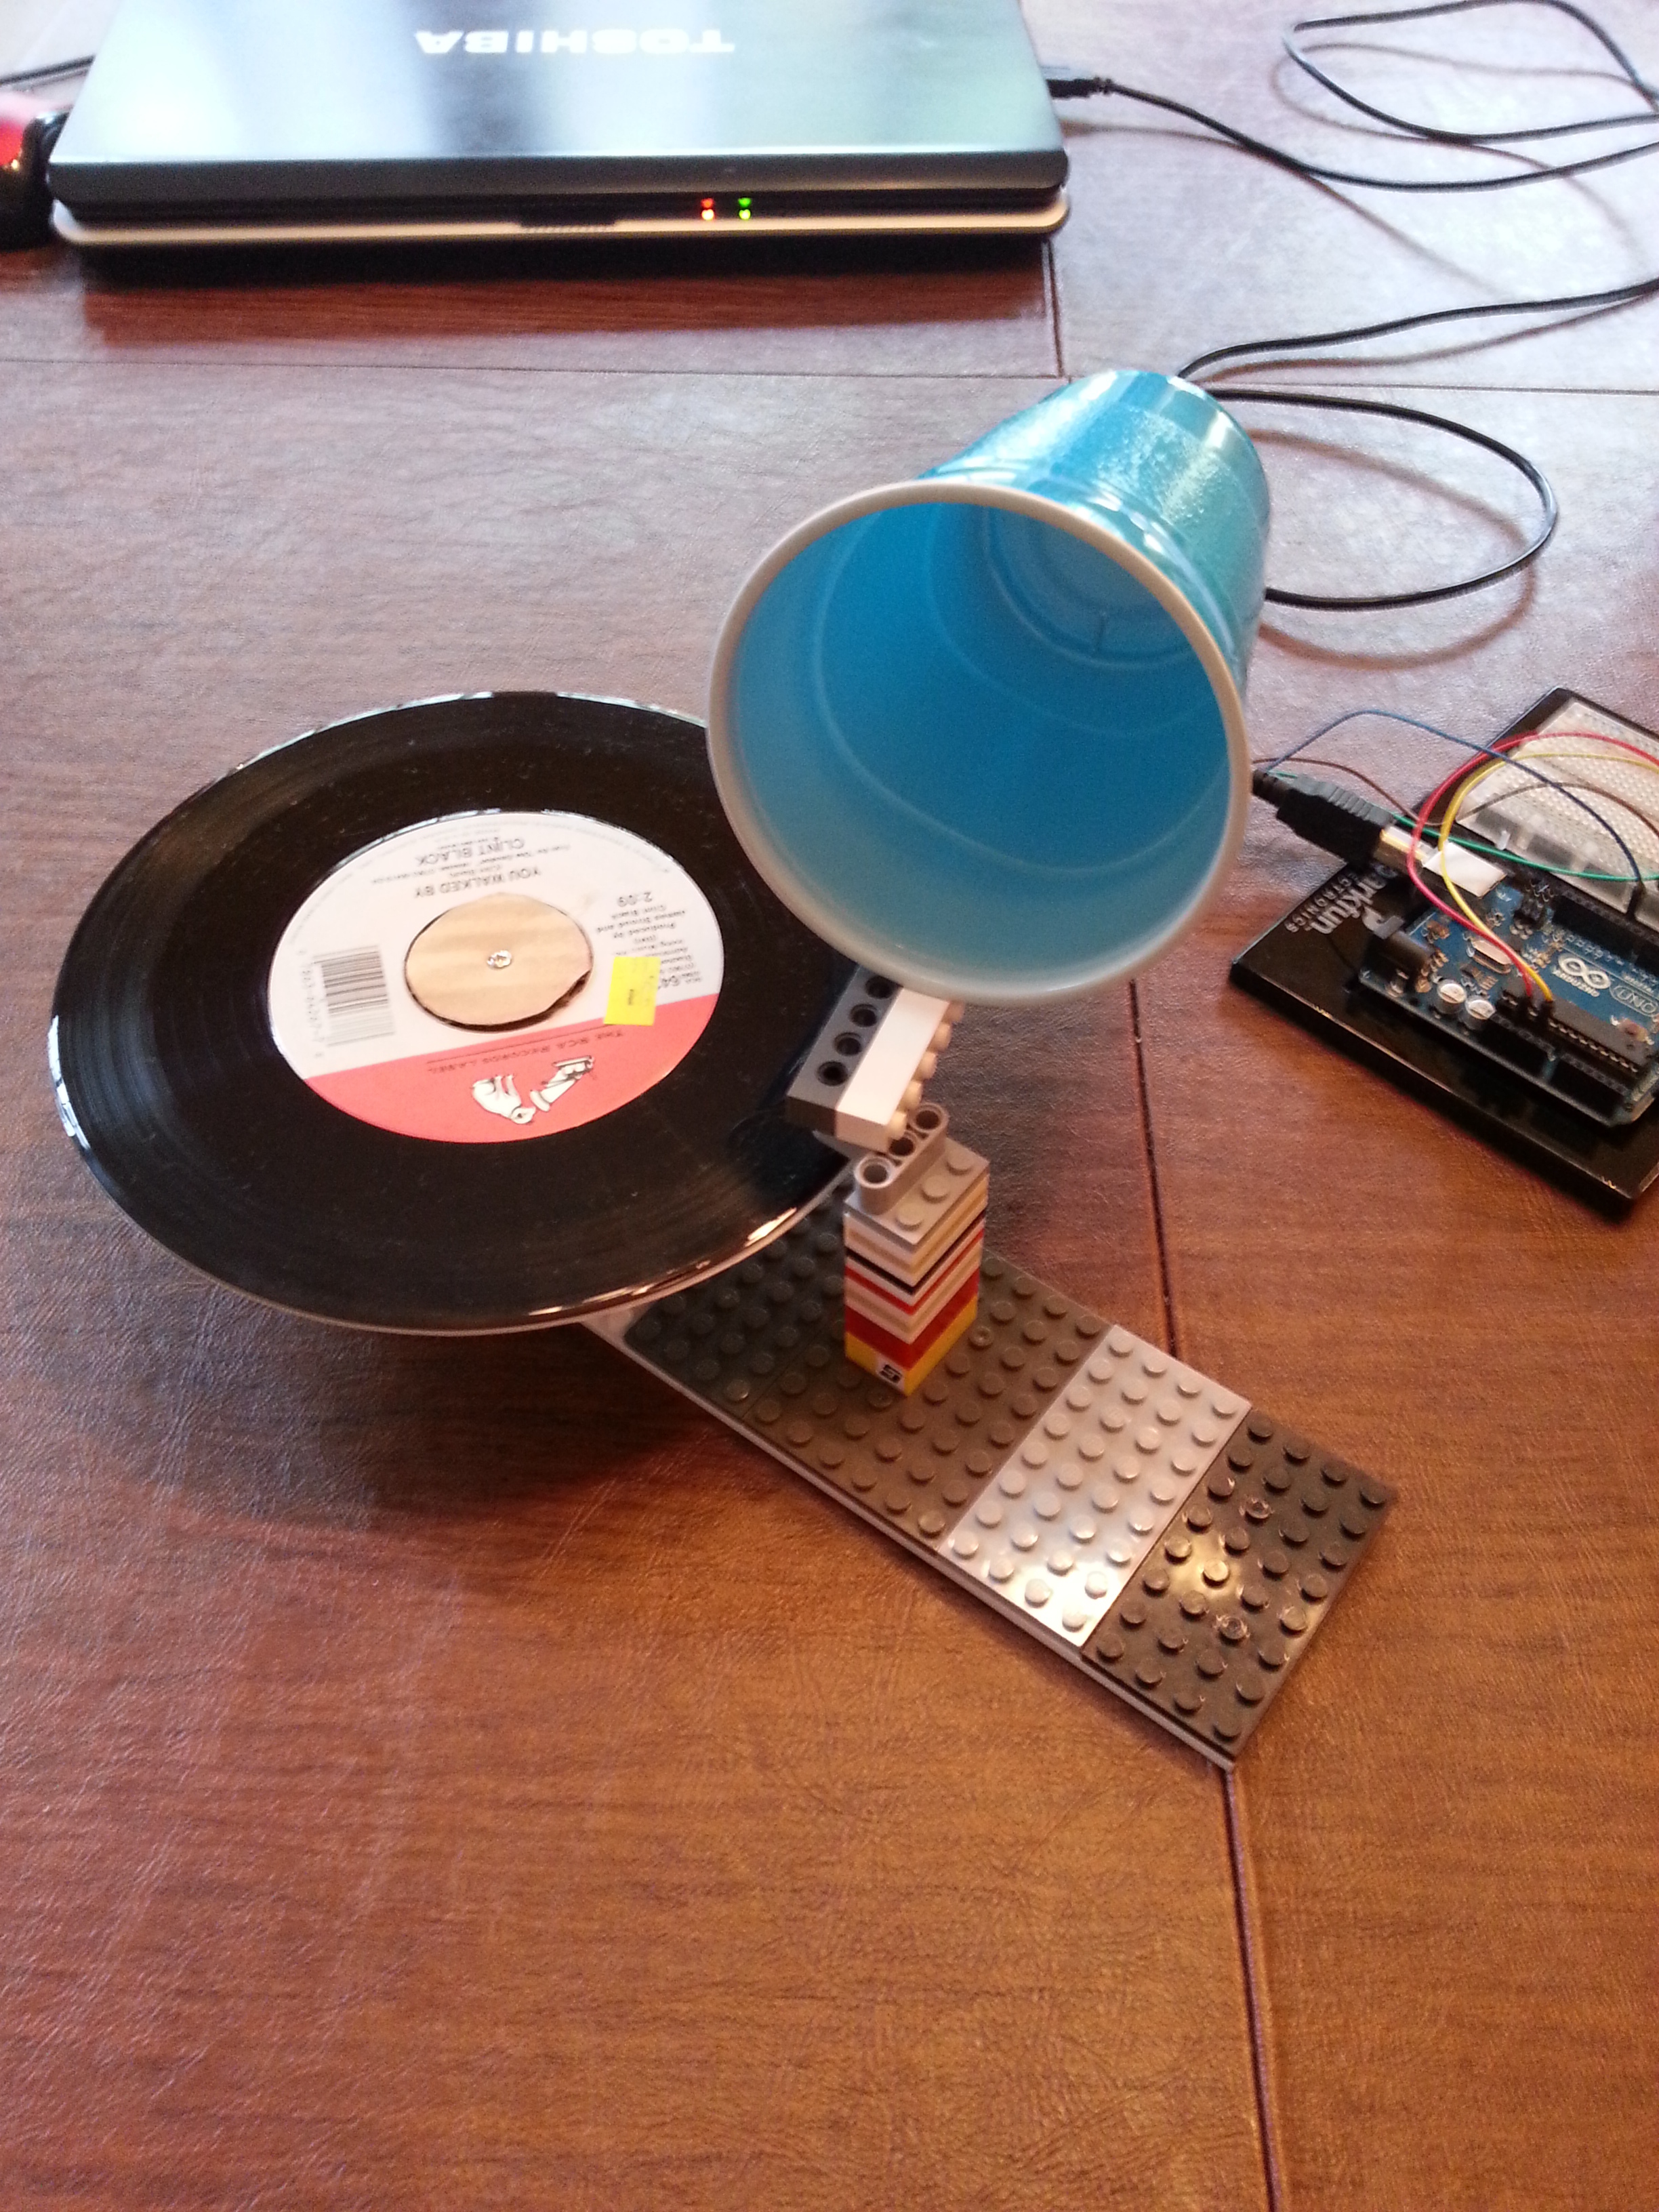 Lego Record Player Using an Arduino and a Servo Motor